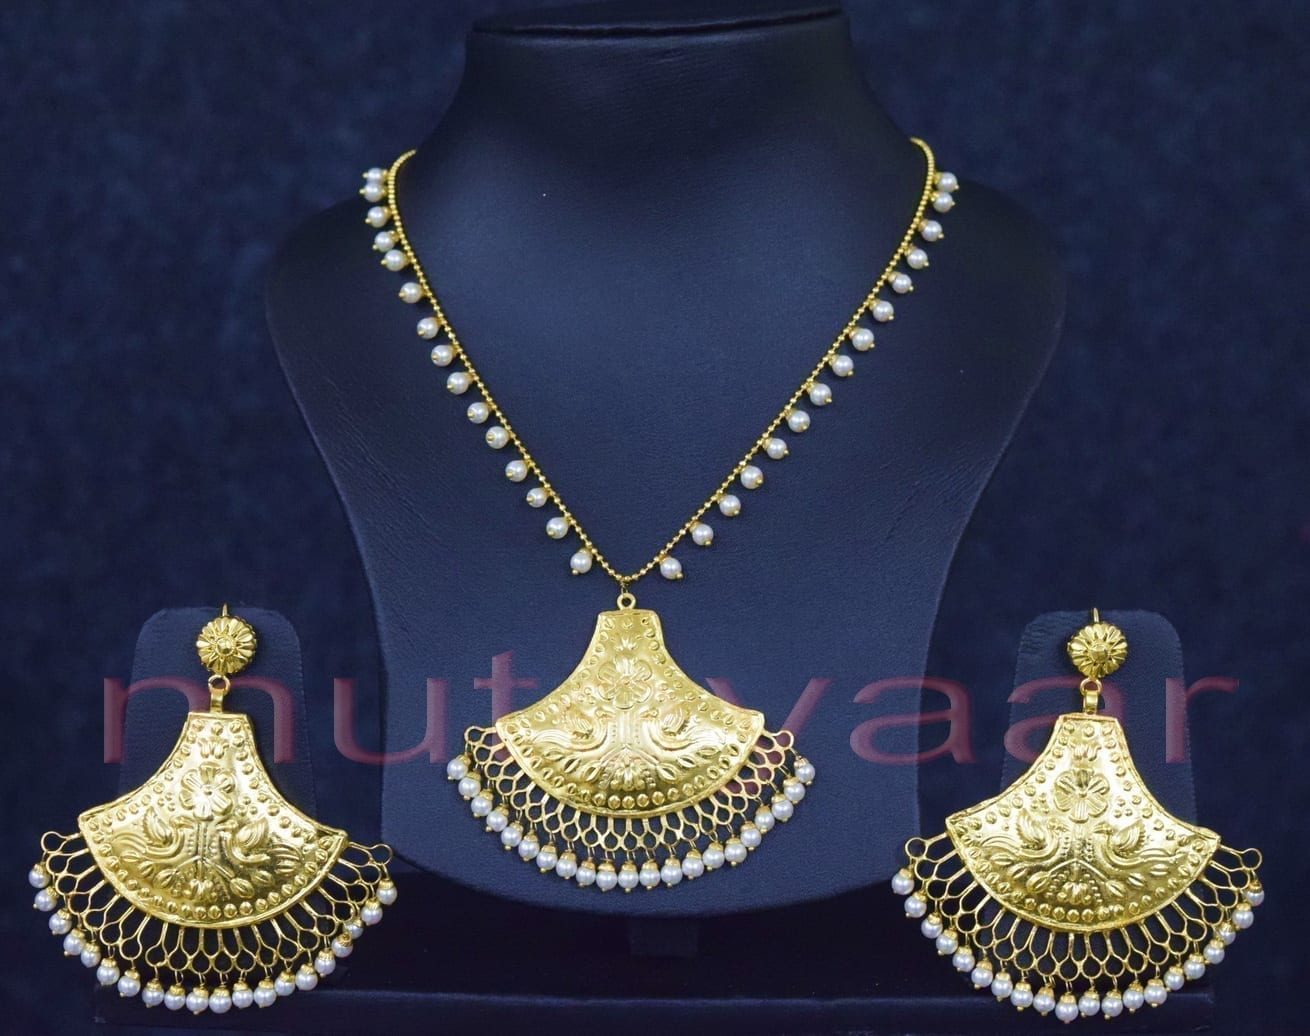 24 Ct. Gold Plated Traditional Punjabi Handmade jewellery Pendant Earrings set J0250 1